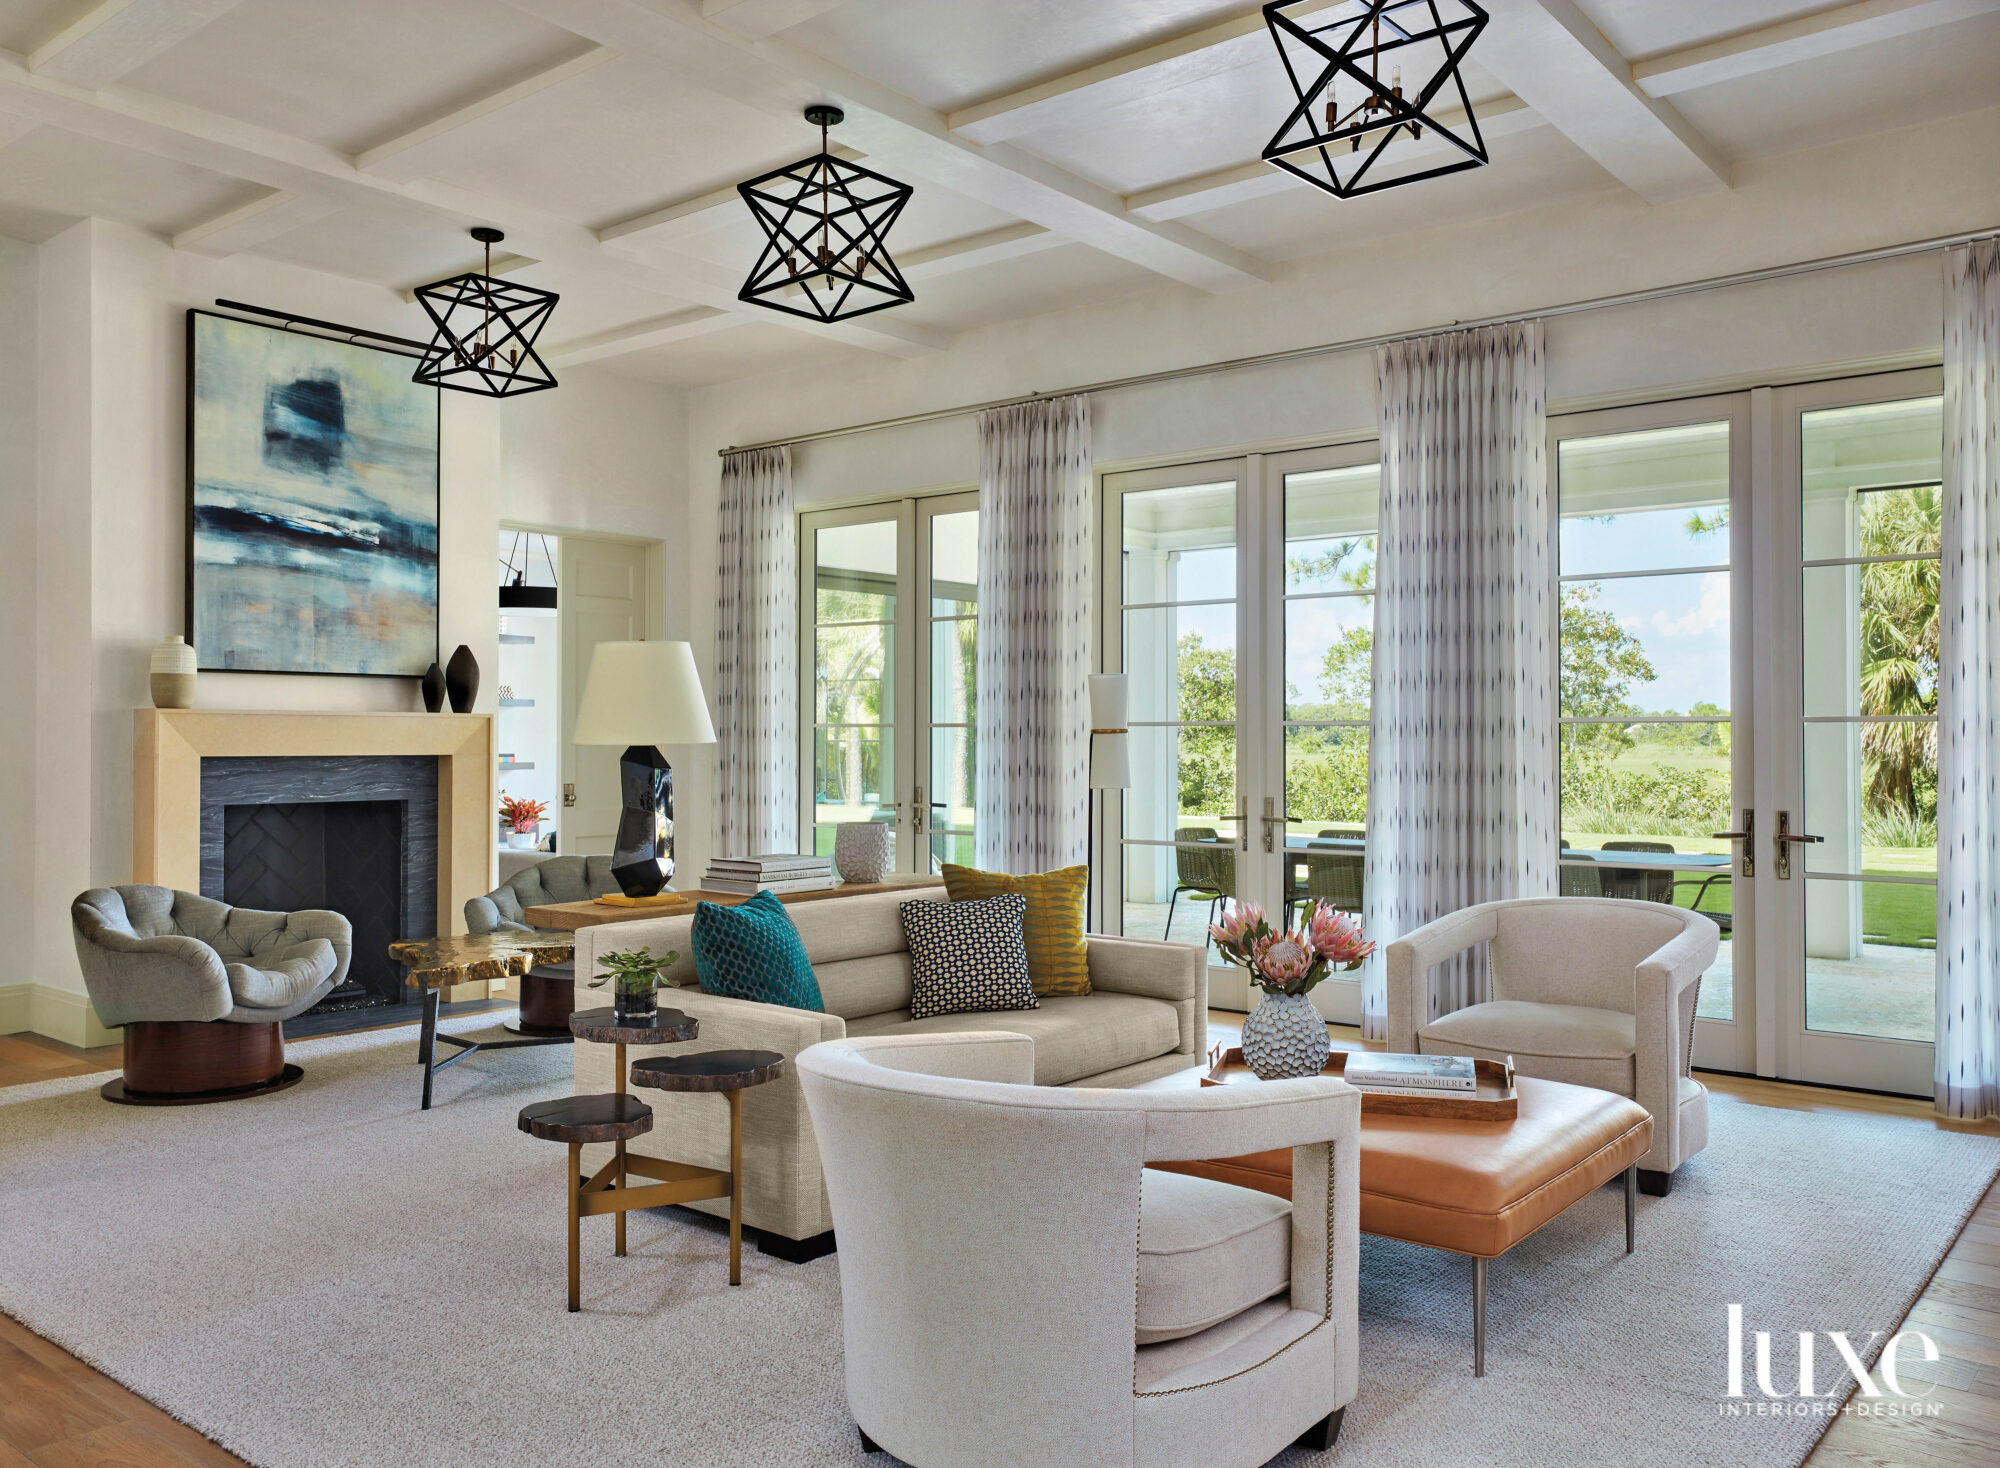 living area with three iron chandeliers, fireplace and two seating areas